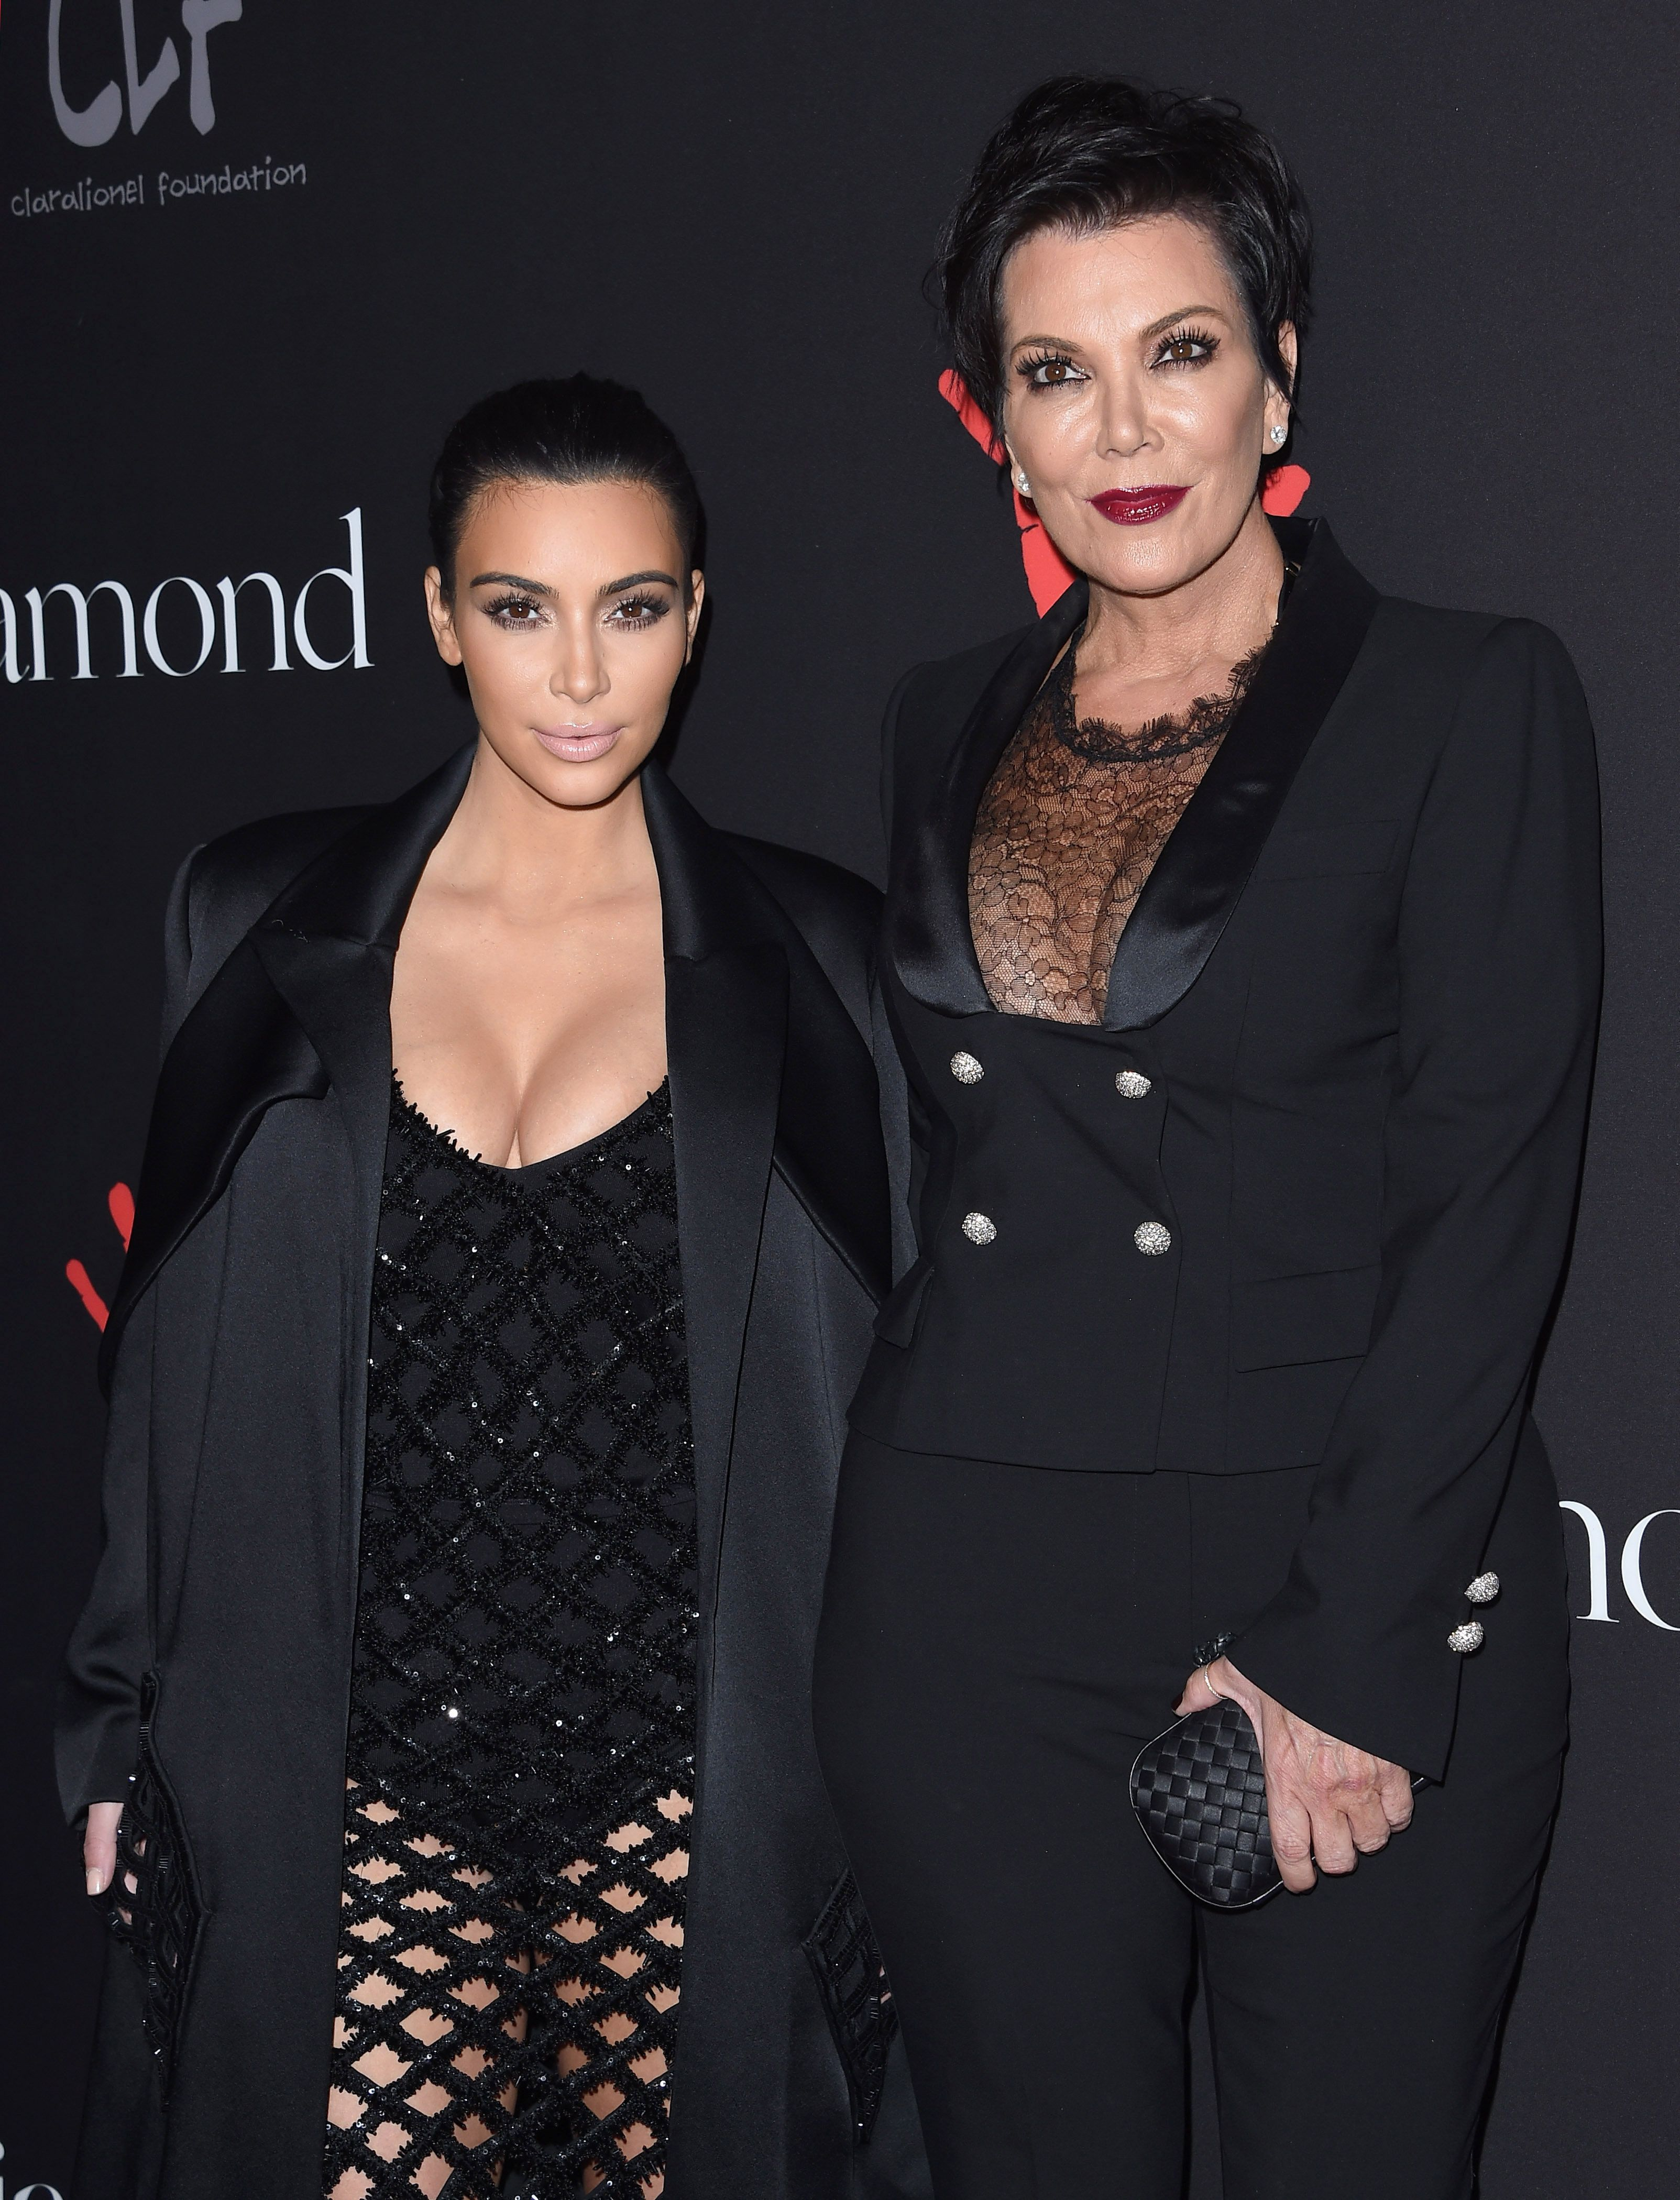 BEVERLY HILLS, CA - DECEMBER 11:  TV personalities Kim Kardashian and Kris Jenner arrive at Rihanna's First Annual Diamond Ball at The Vineyard on December 11, 2014 in Beverly Hills, California.  (Photo by Axelle/Bauer-Griffin/FilmMagic)